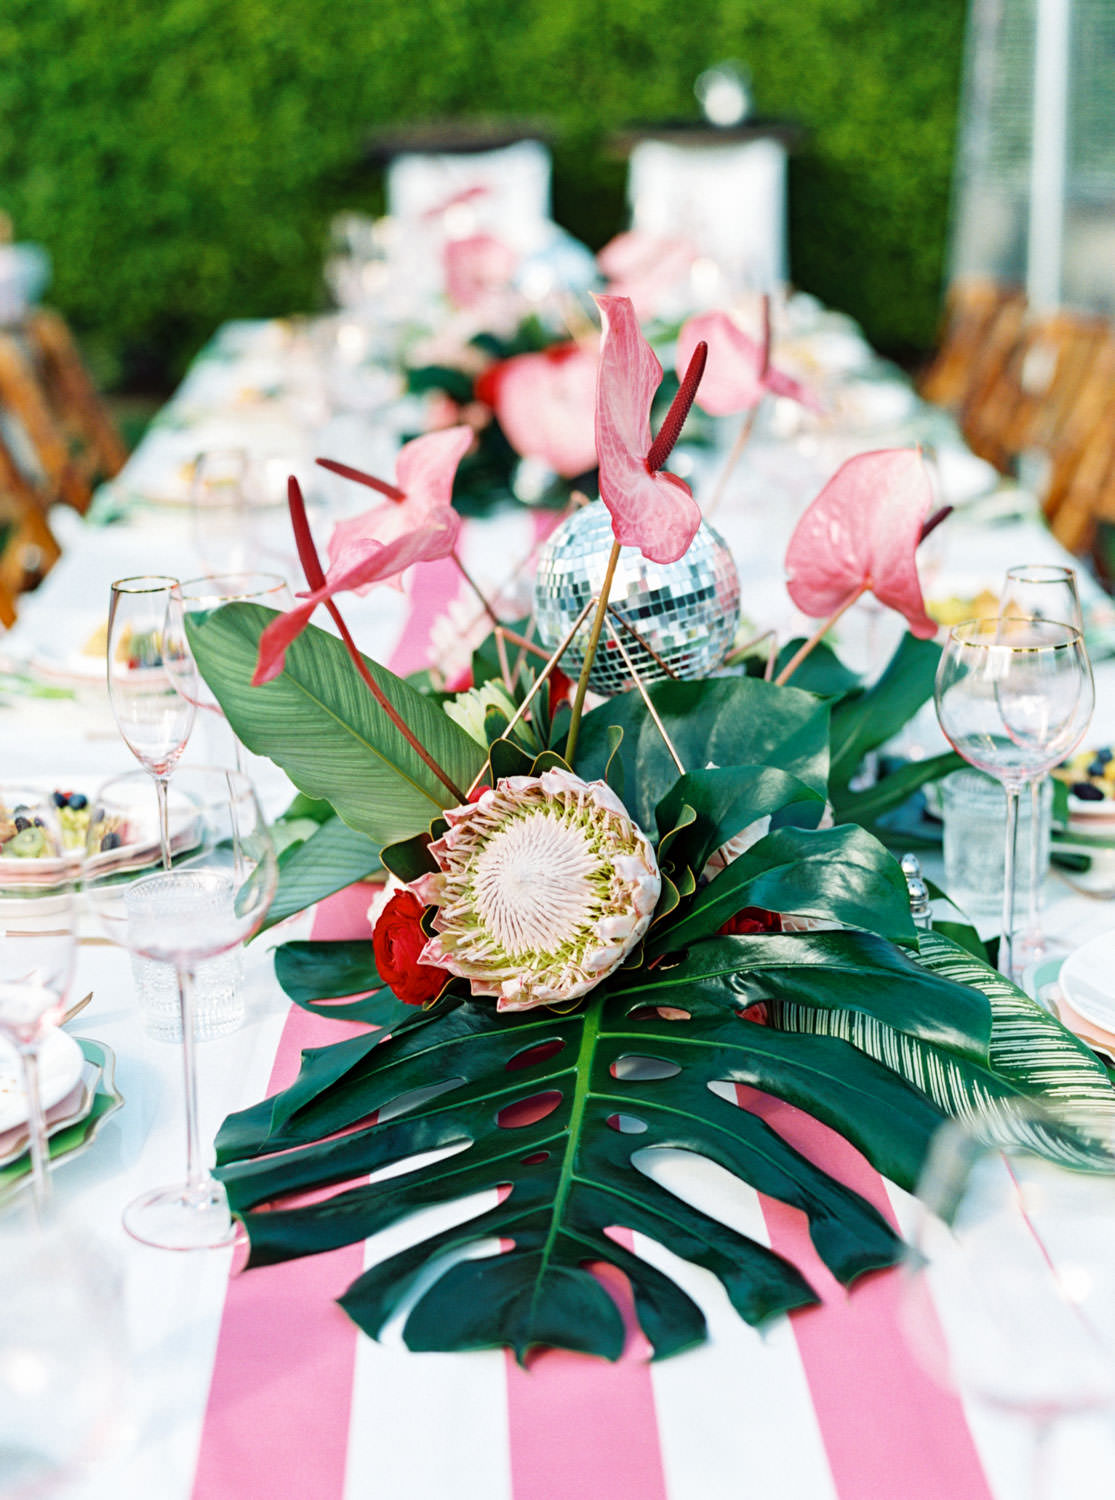 Outdoor brunch reception with long tables covered in pink and white stripe cabana runner, bamboo folding chairs with white cushions, and tropical centerpieces with palm leaves, pink anthurium, and proteas. Riviera Palm Springs Wedding by Cavin Elizabeth Photography